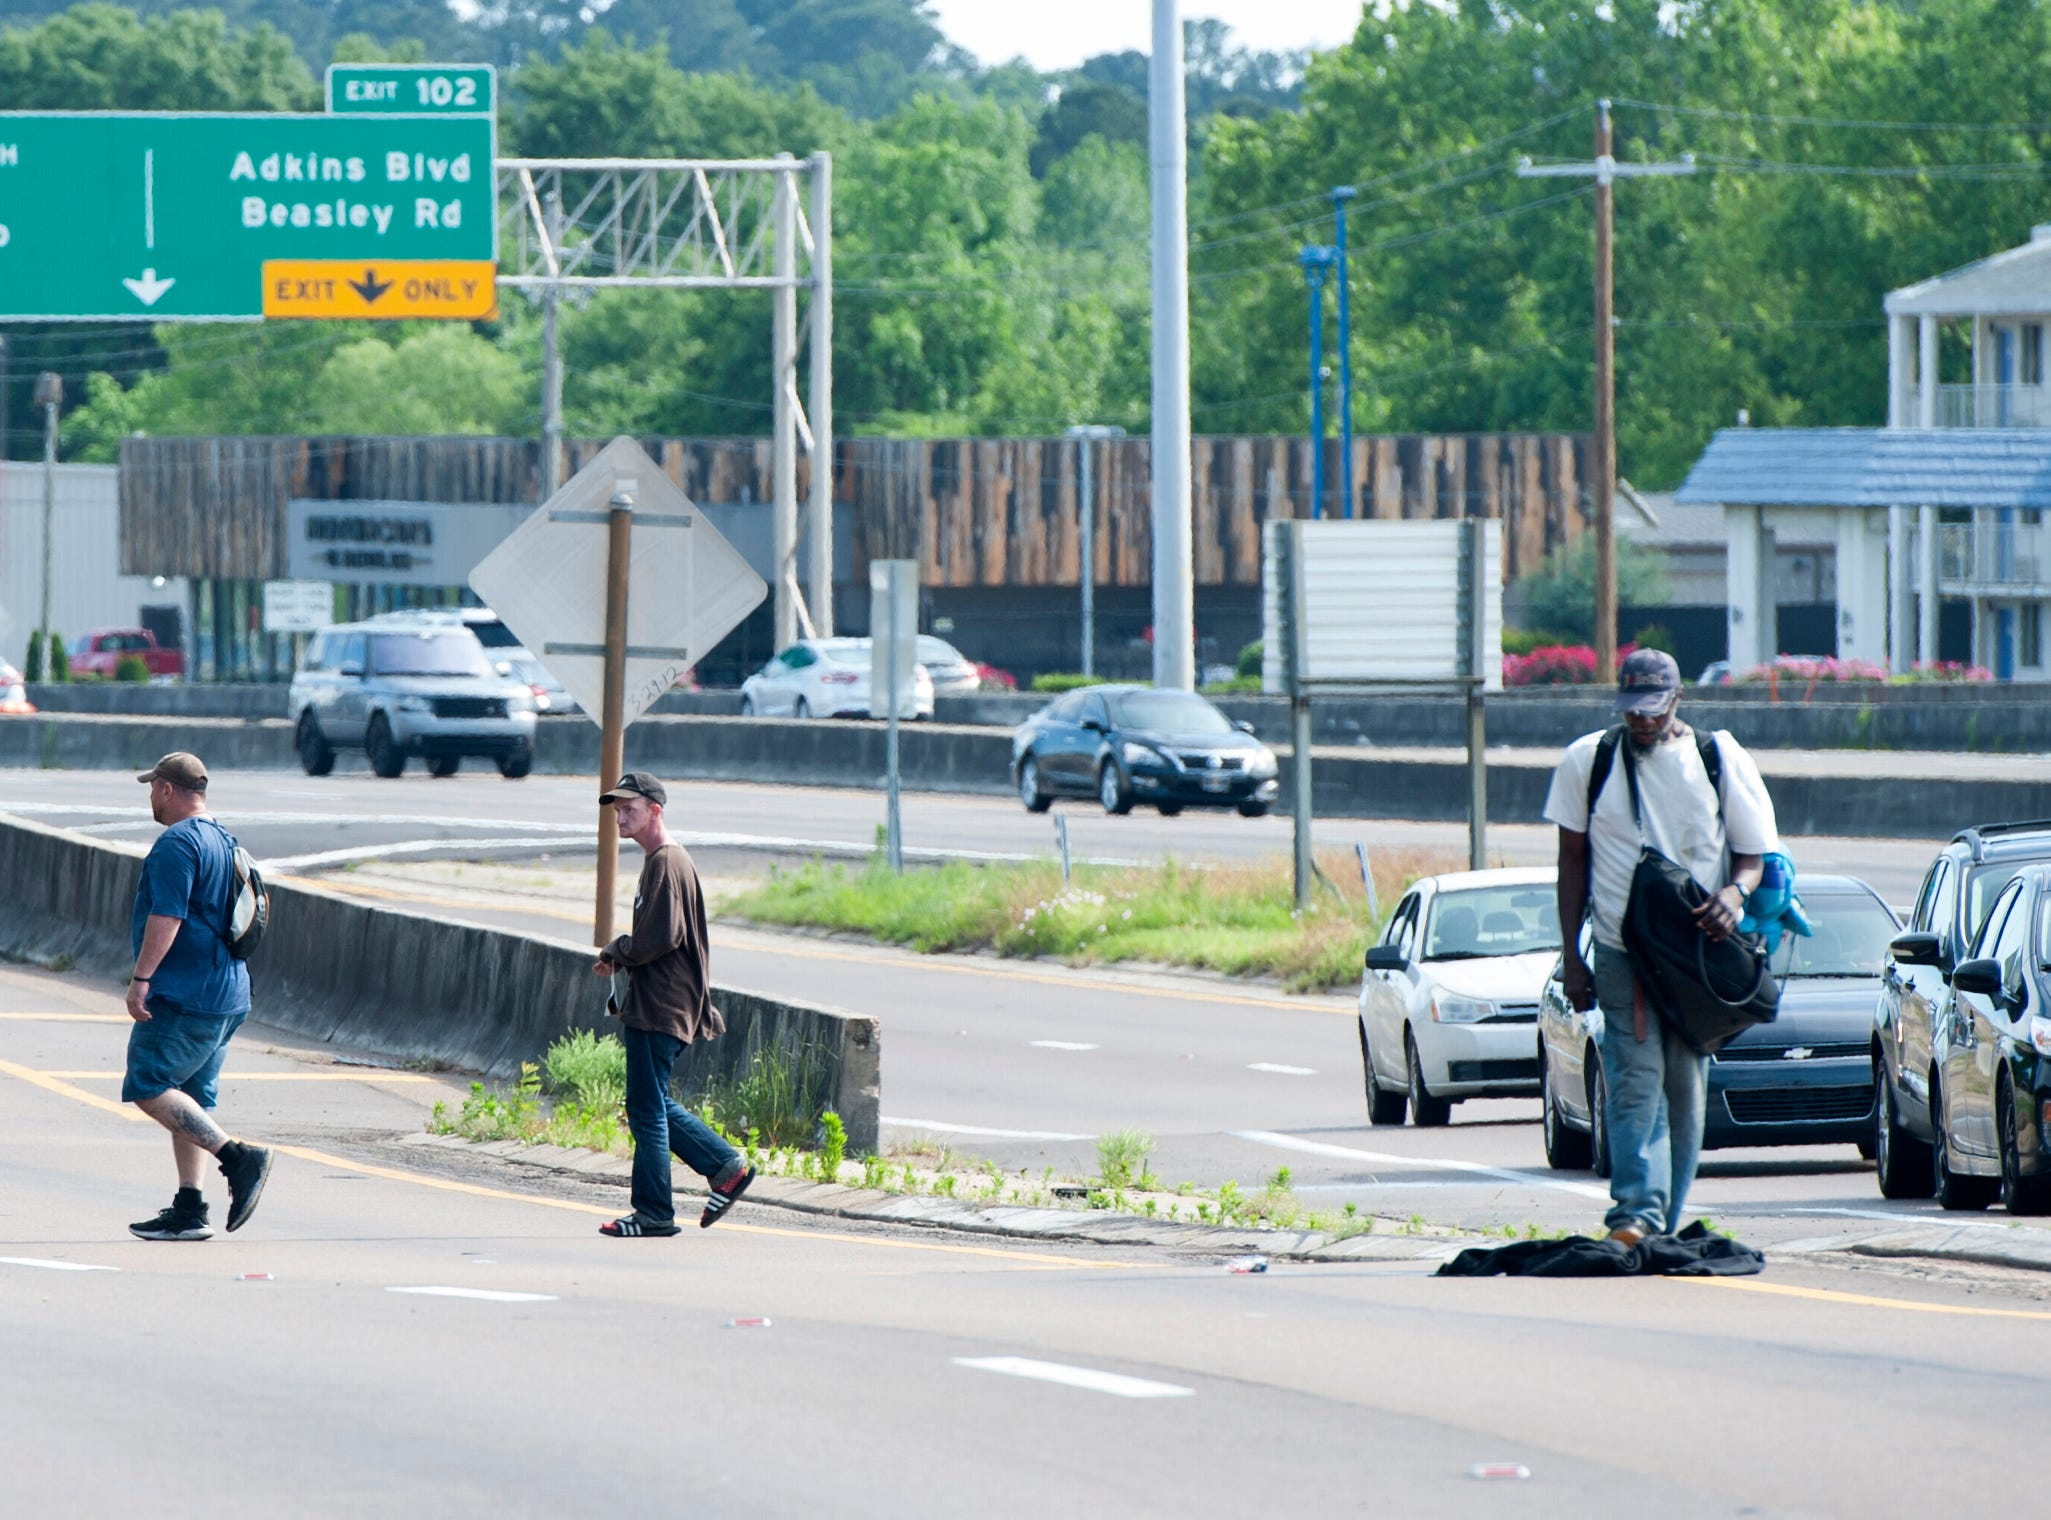 The sounds of a Jackson Police siren scared off two men who were trying to take over Chuck's spot on I-55 East Frontage Road just south of County Line Road. Taking blows to defend your spot is all part of it, explains Chuck who has called that small area of concrete his for 10 years.